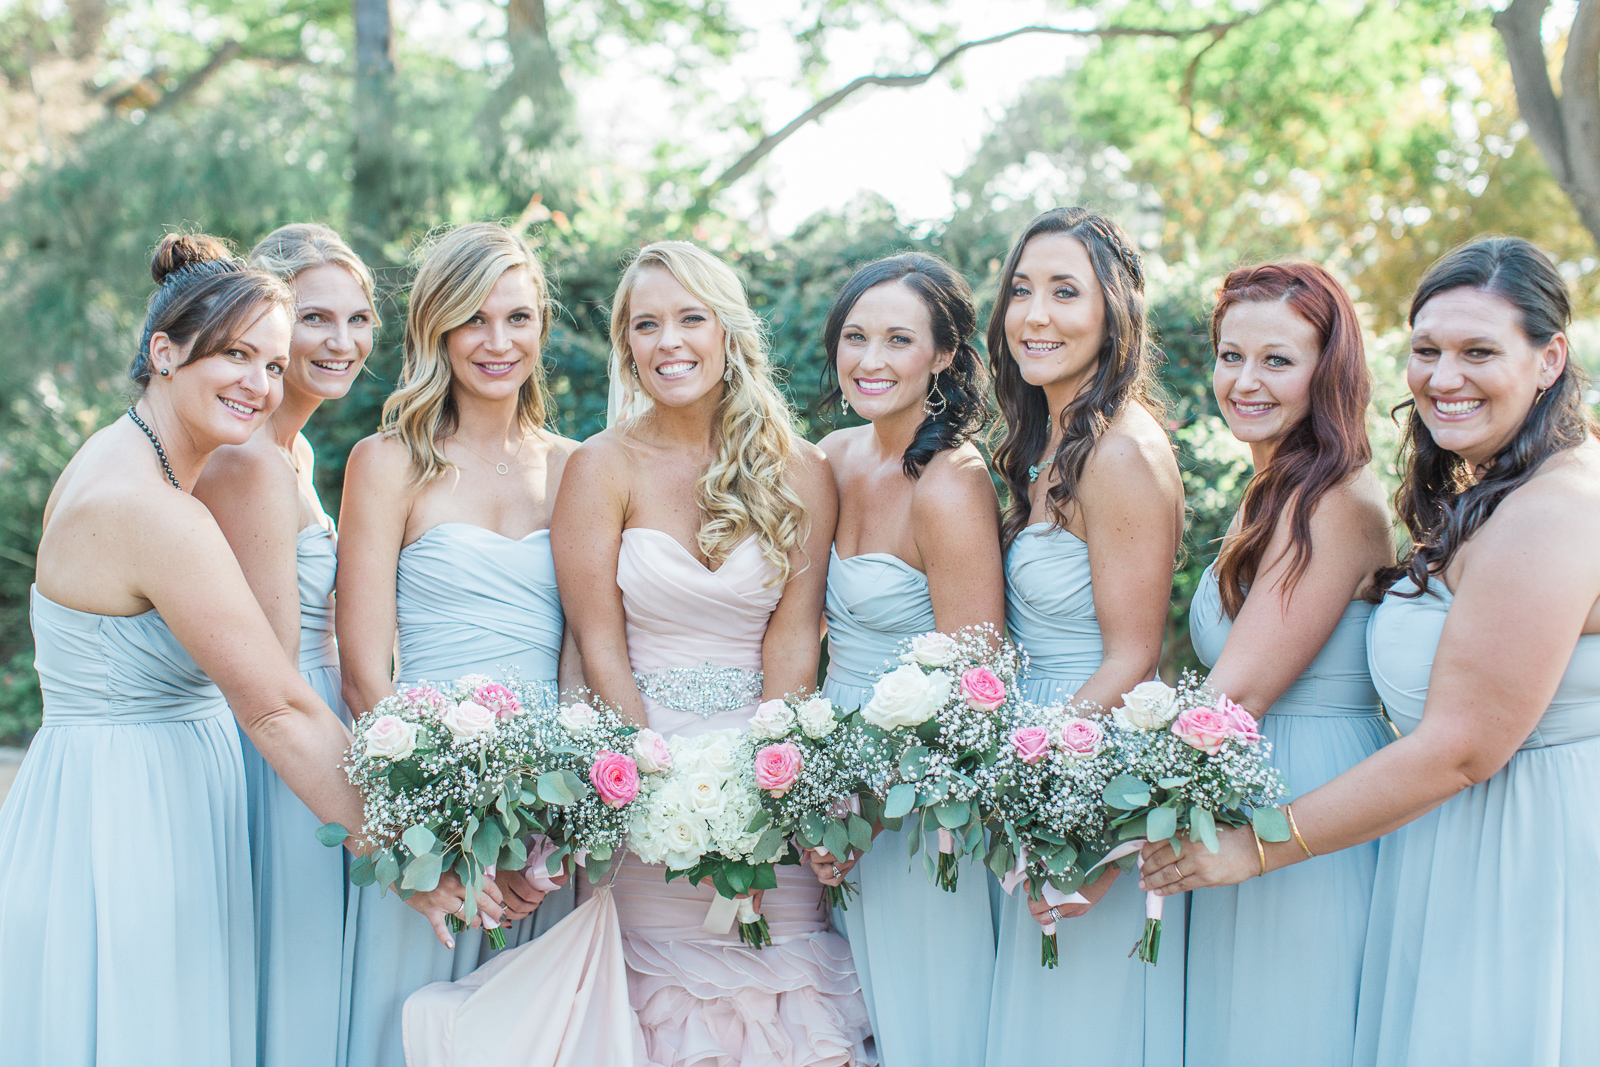 Bride, bridesmaids and bouquets of roses at Alice Keck Park Wedding